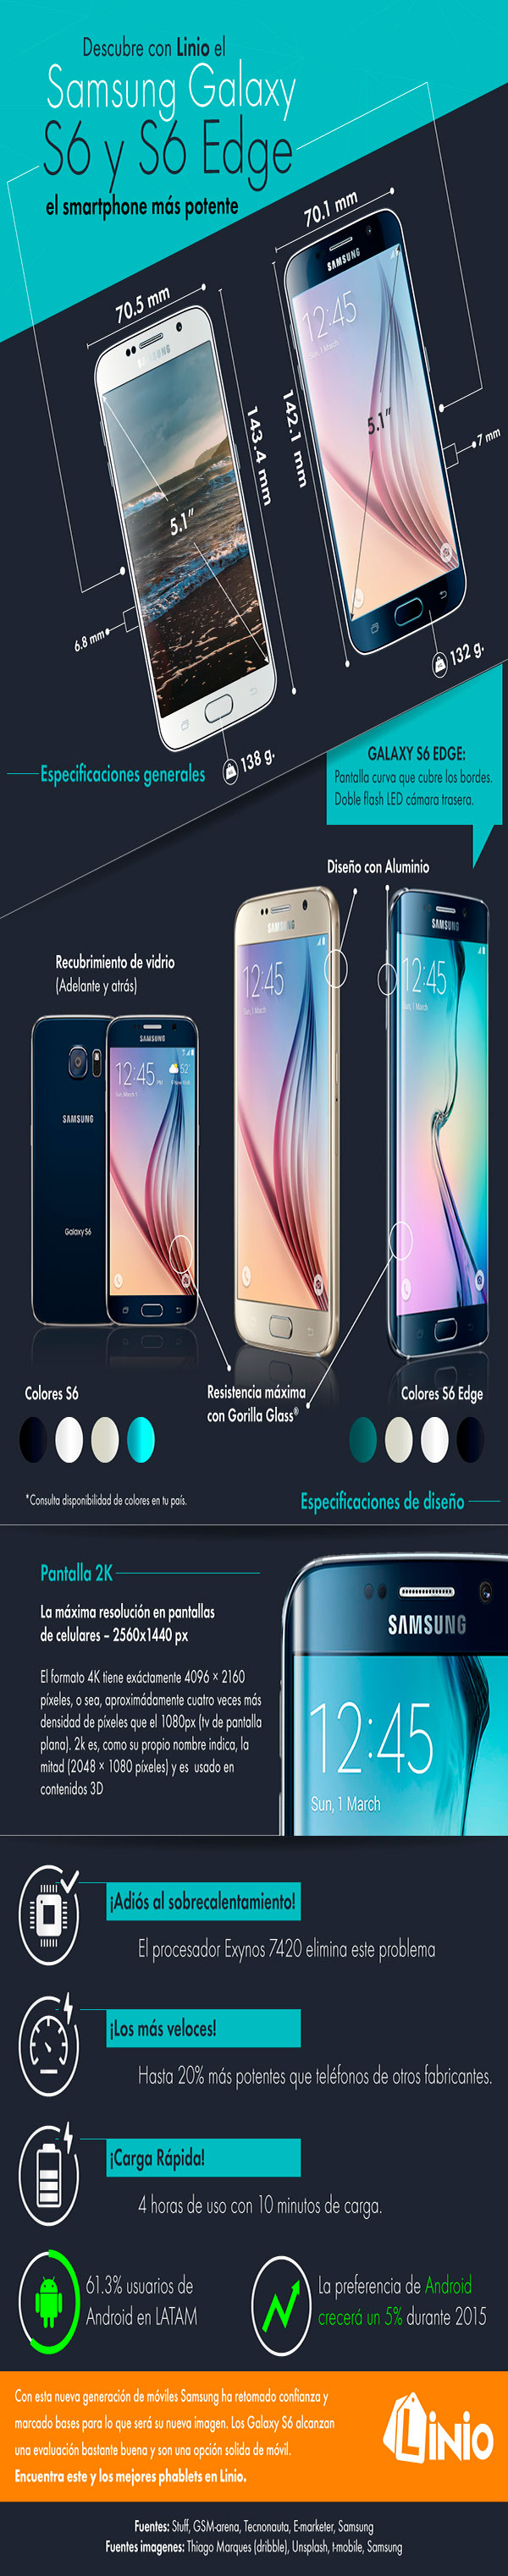 Samsung Galaxy S6 y S6 Edge